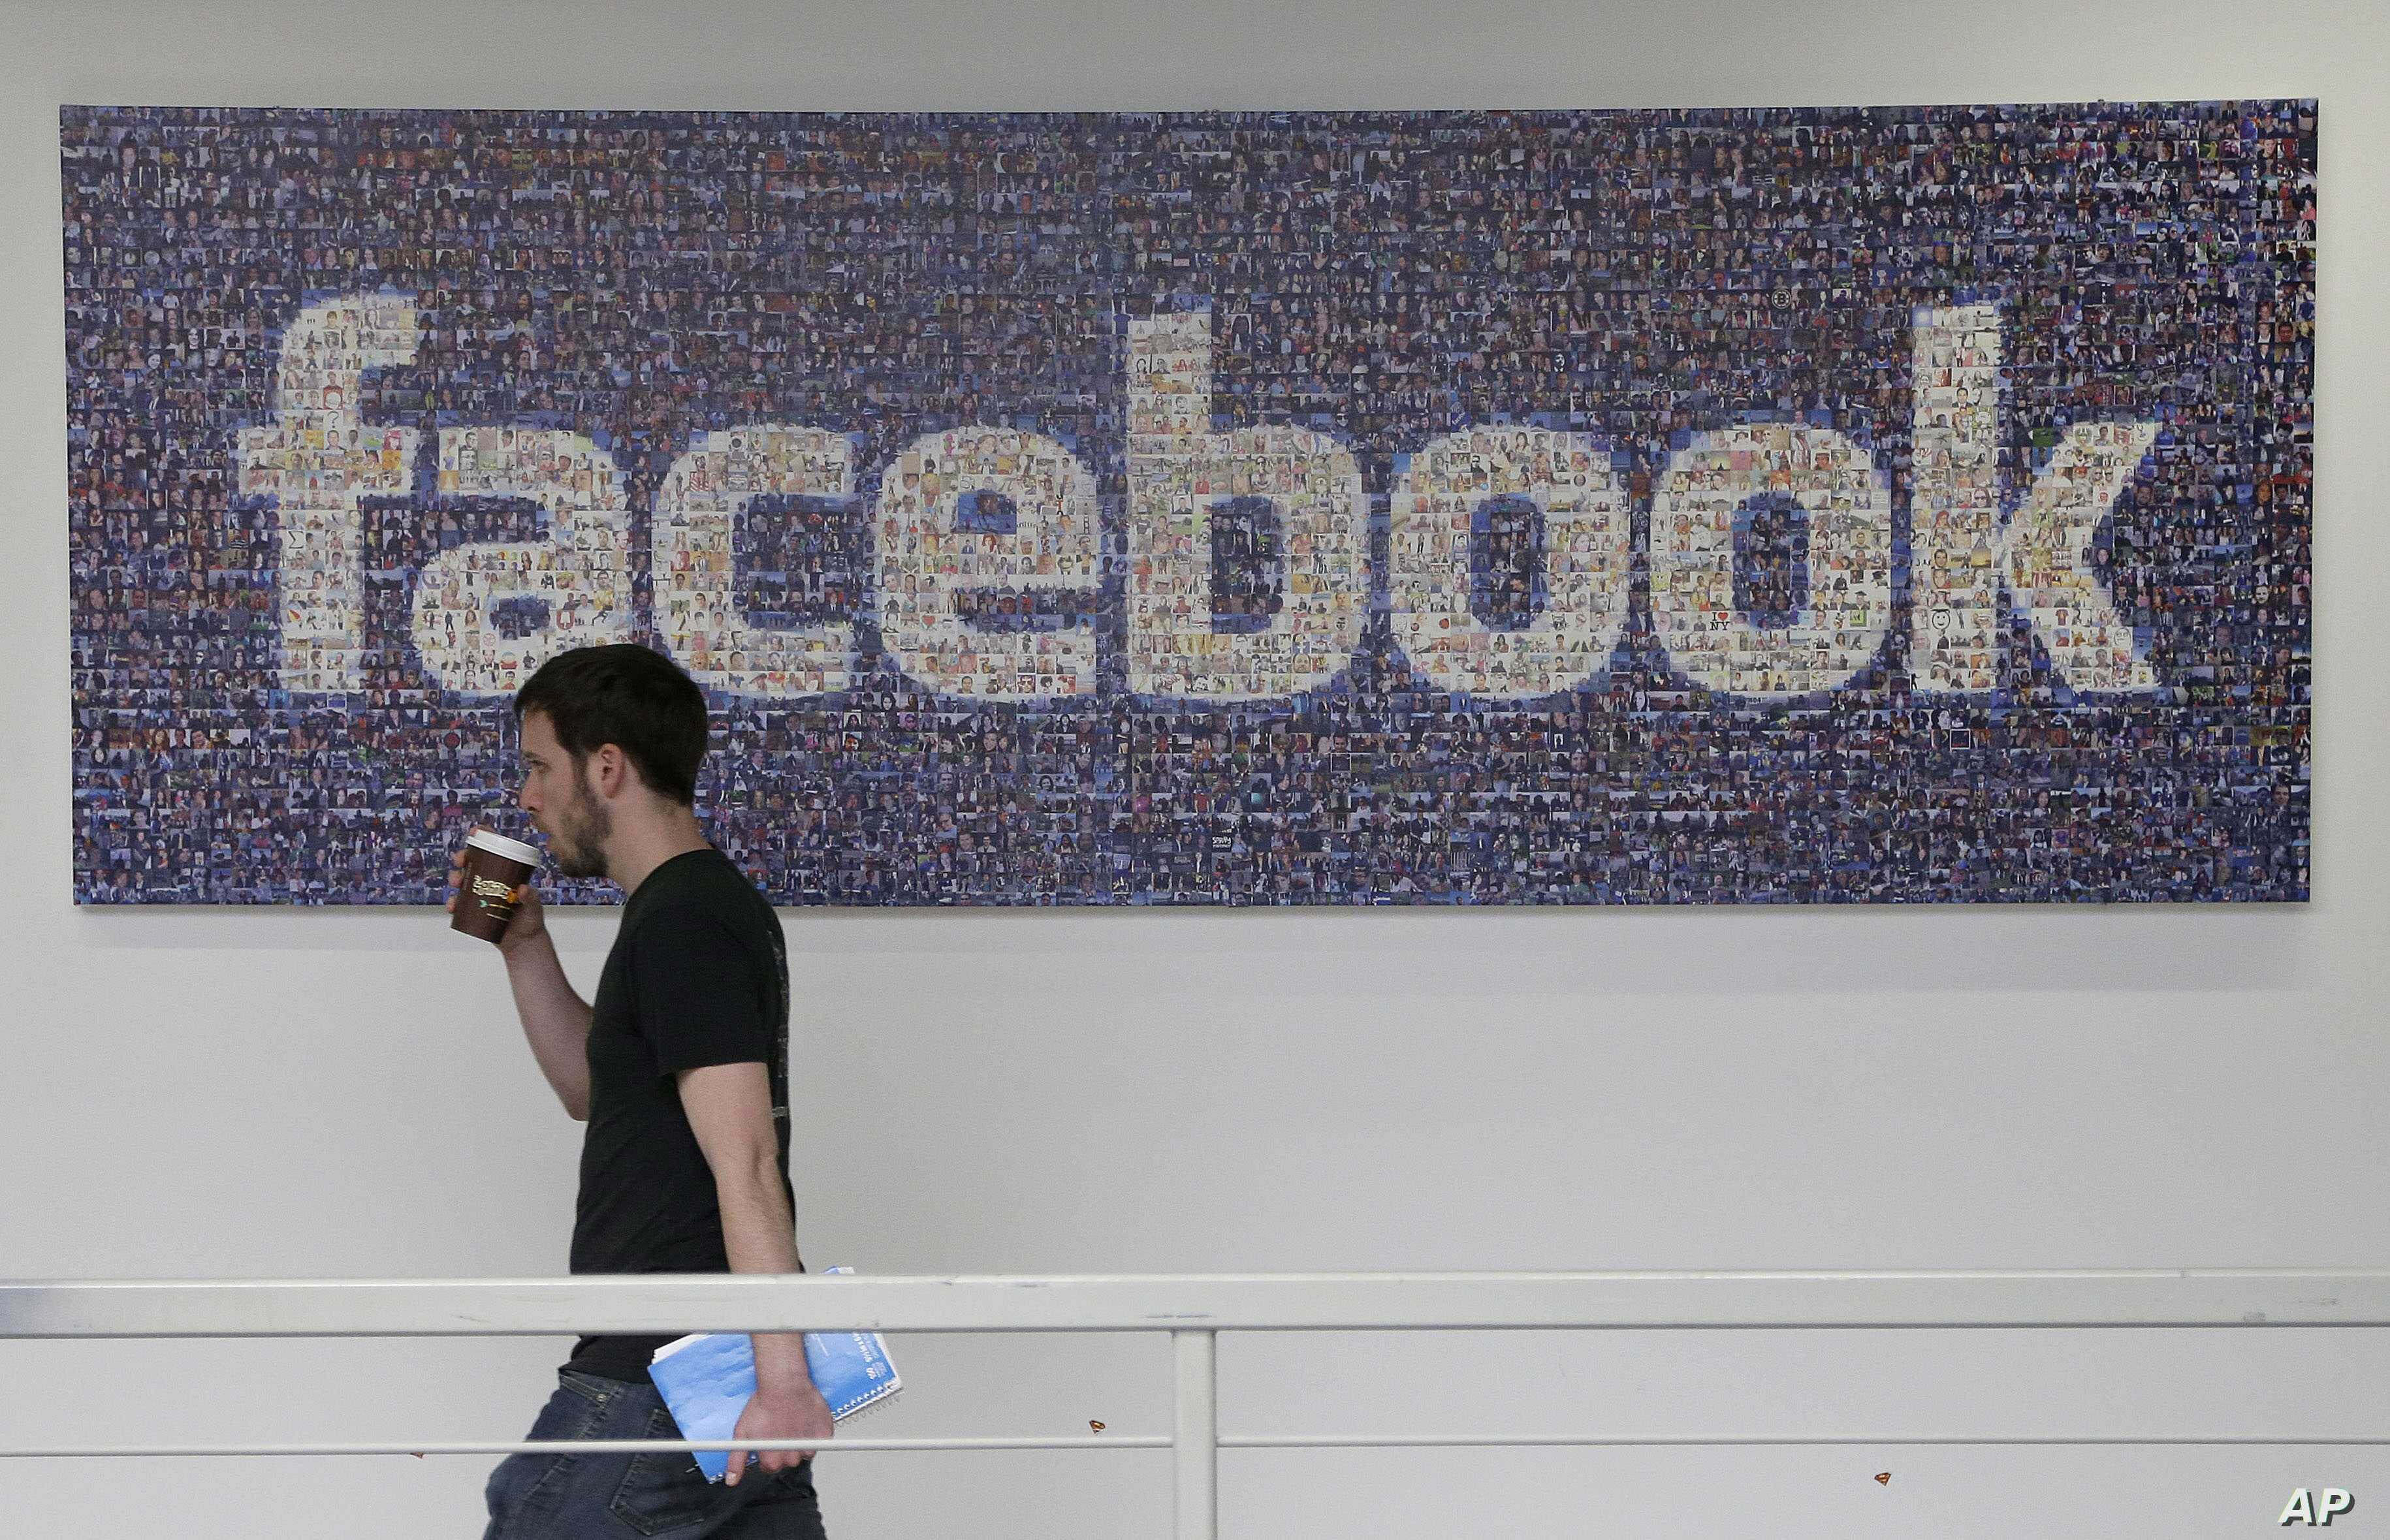 Facebook to Test Internet-access Drone This Year | Voice of America